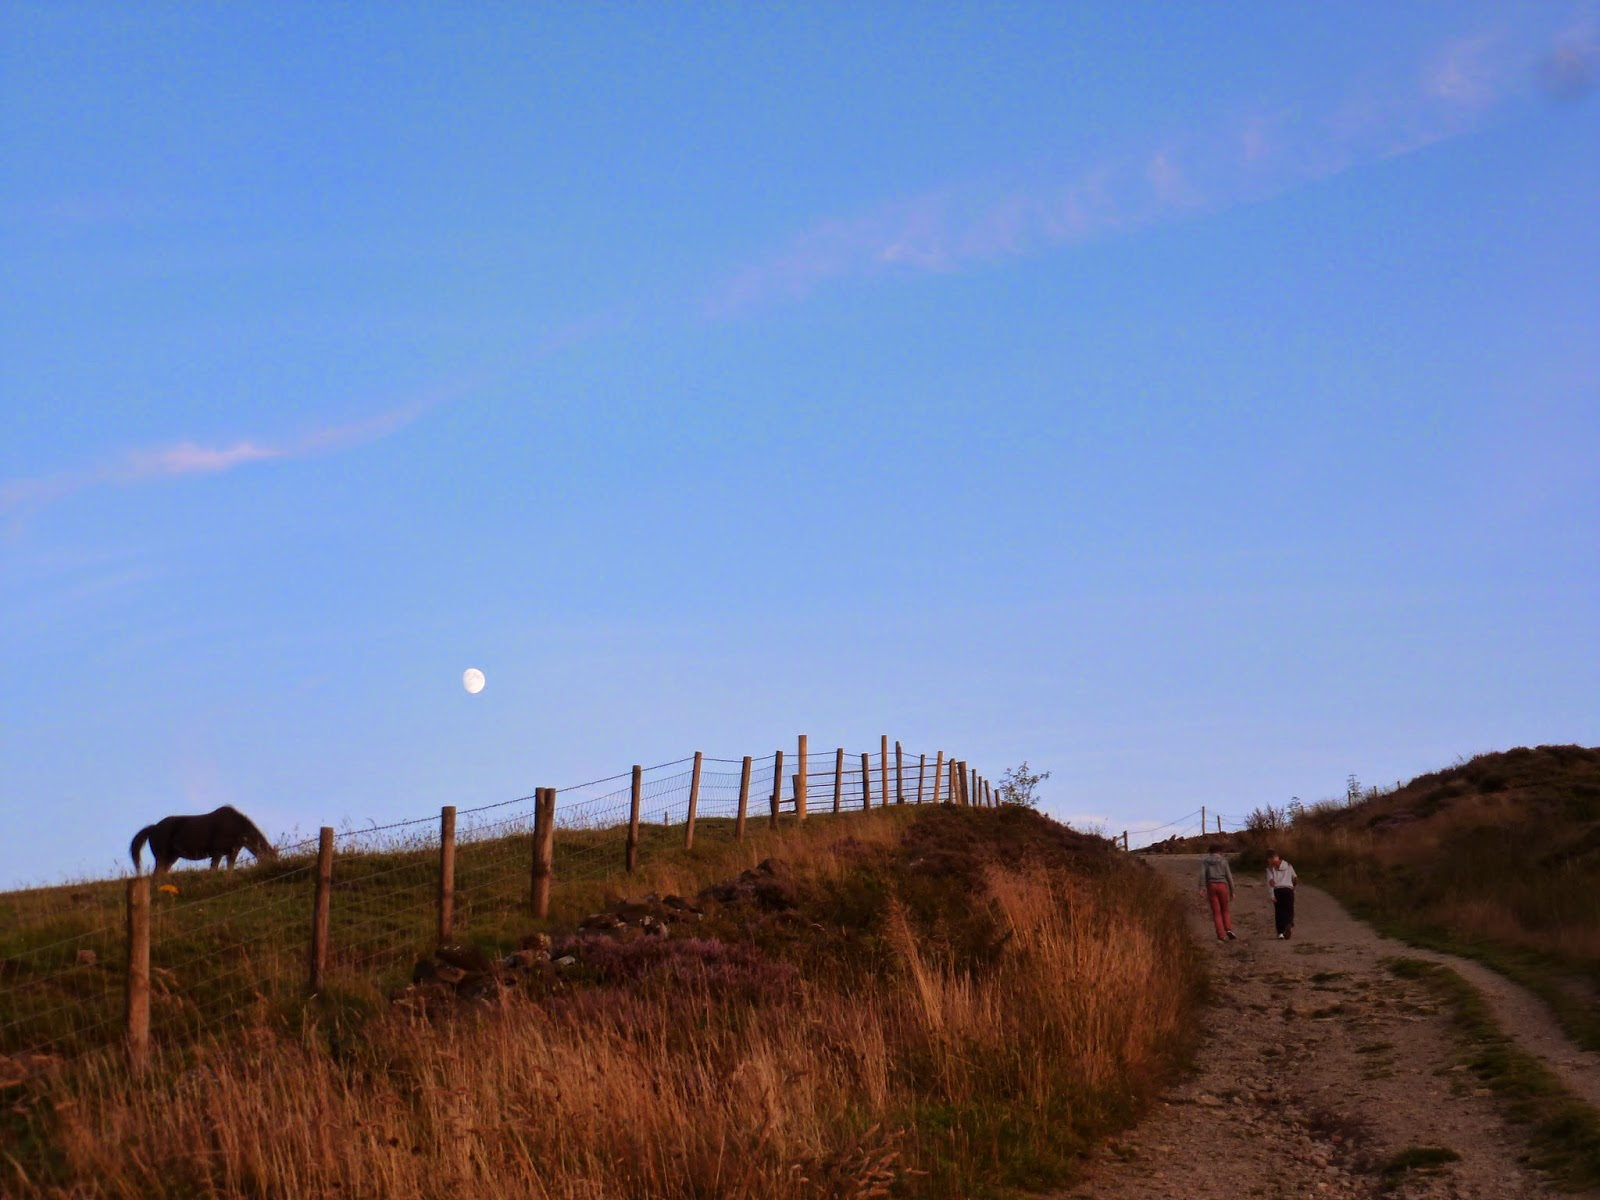 sunset walk uphill with family next to horse field with the moon showing